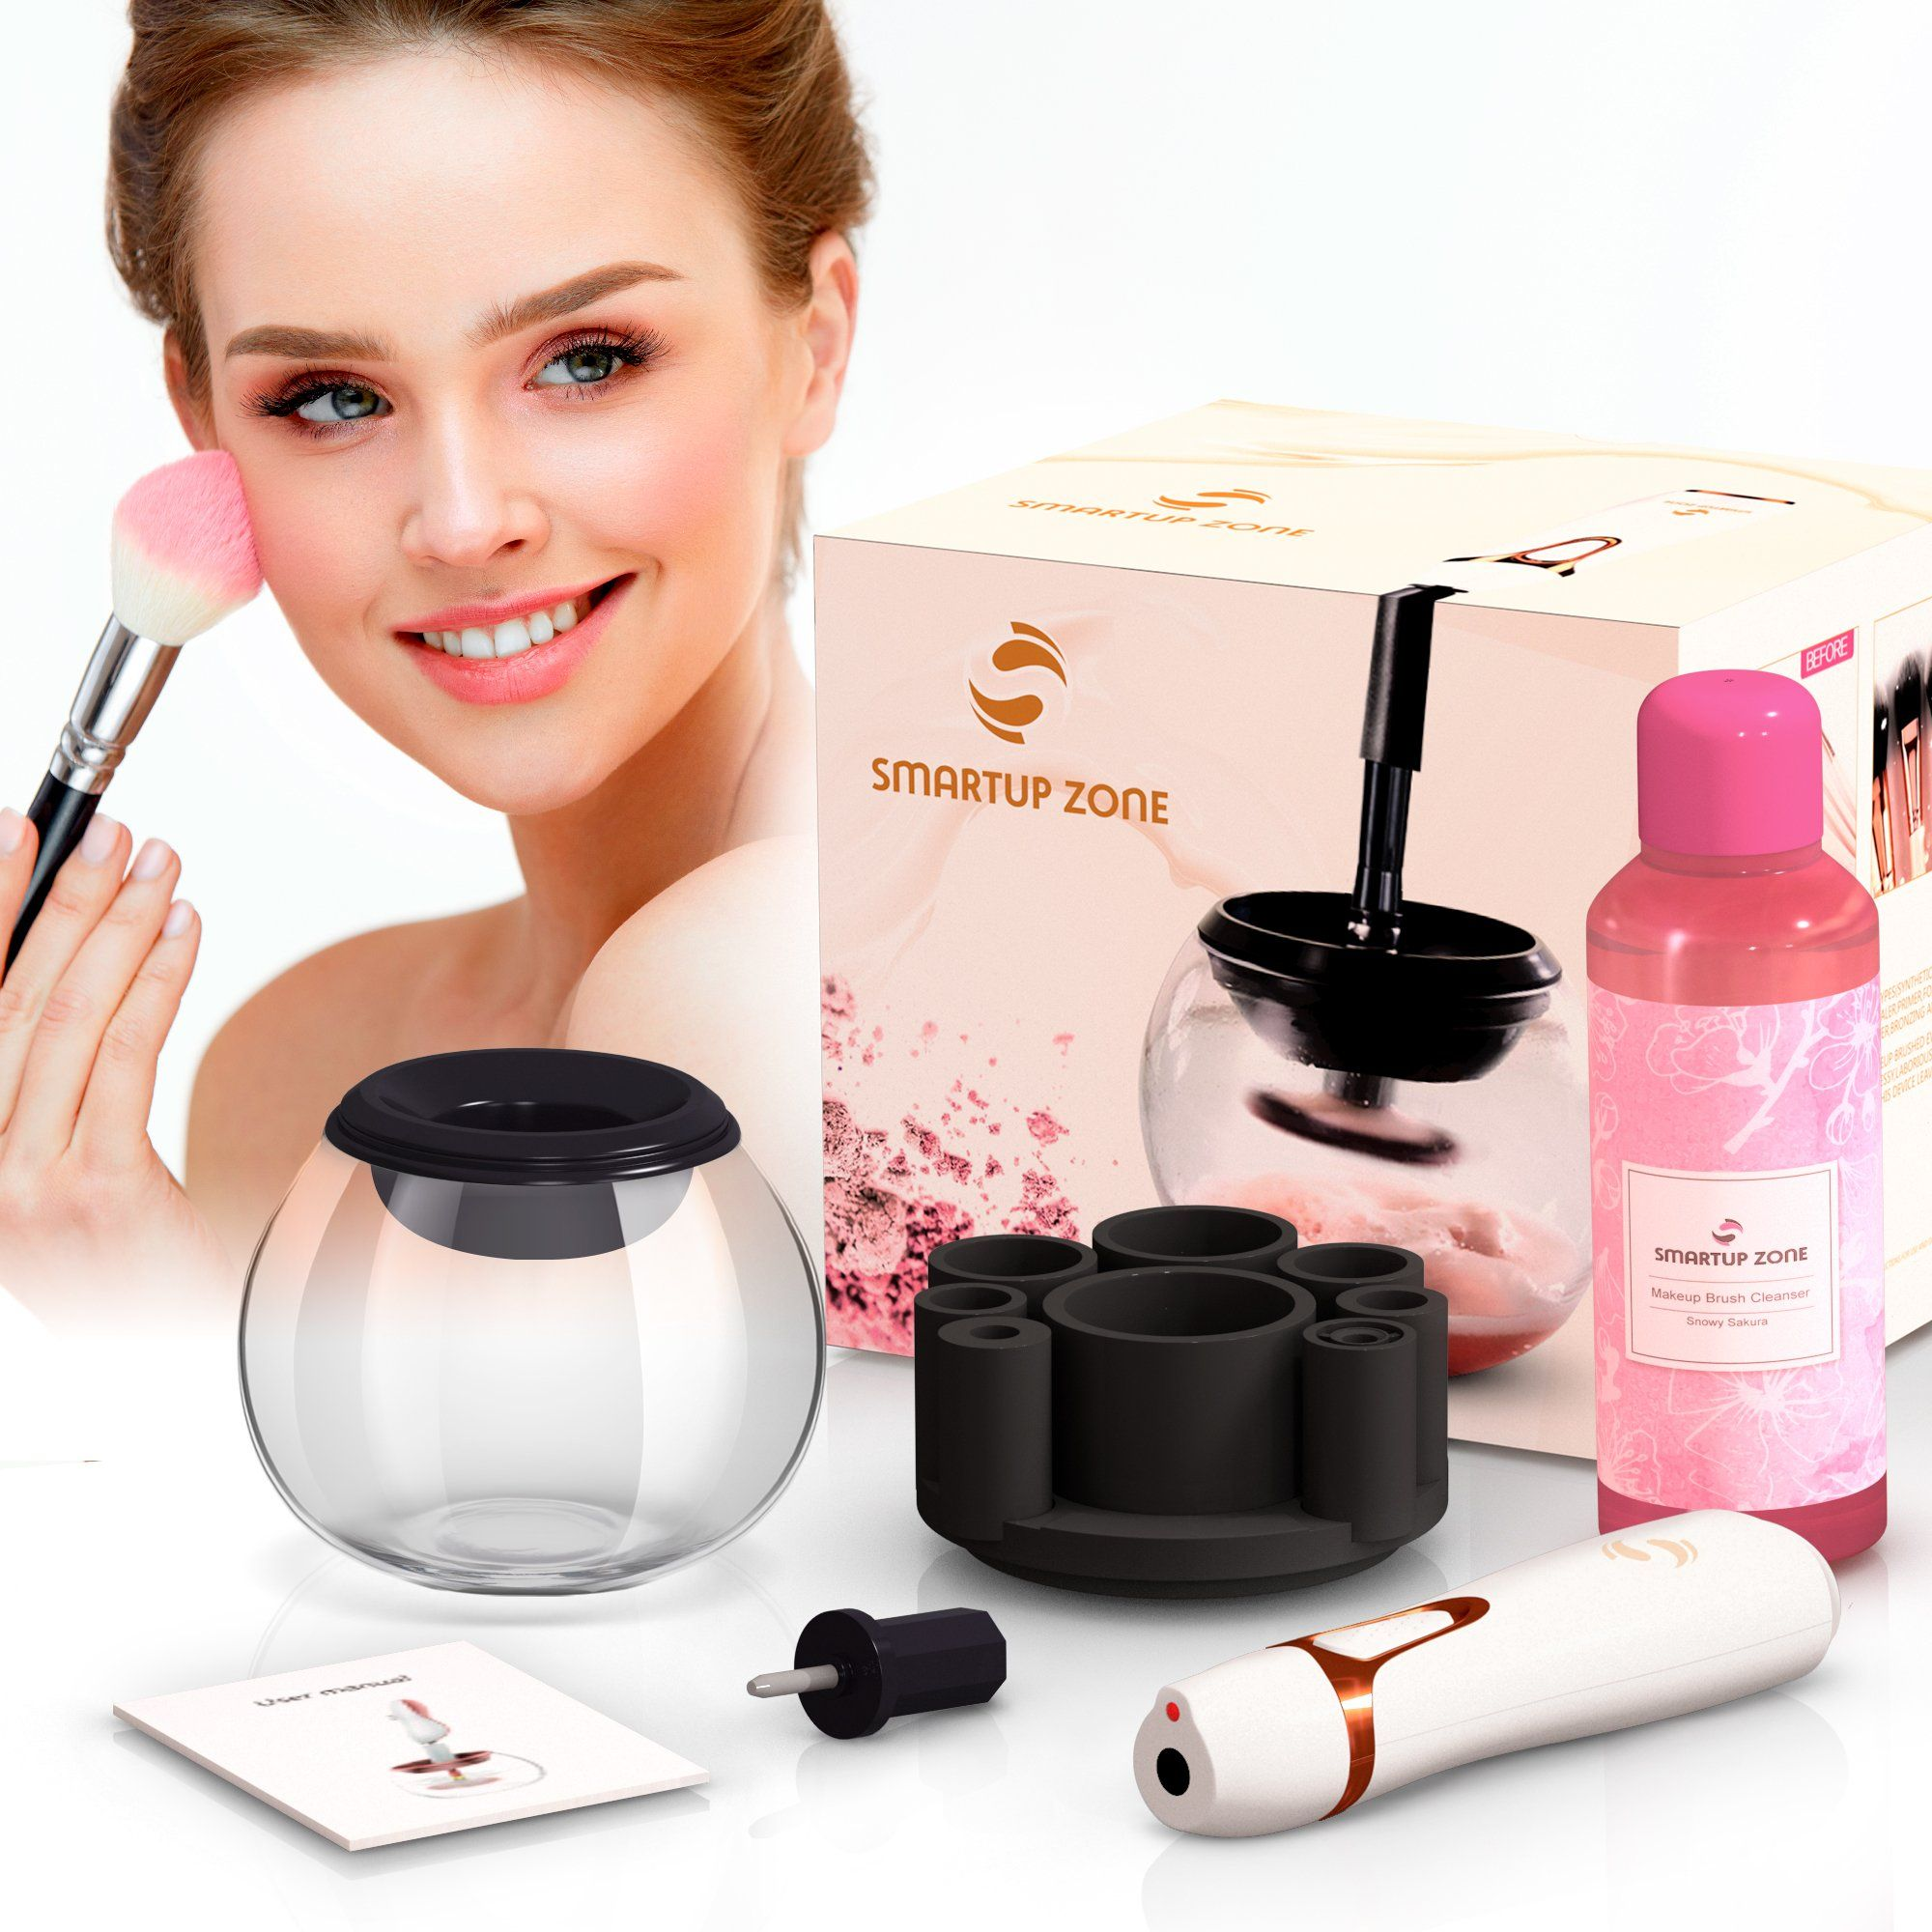 Buy Electric Makeup Brush Cleaner Dryer For All Size